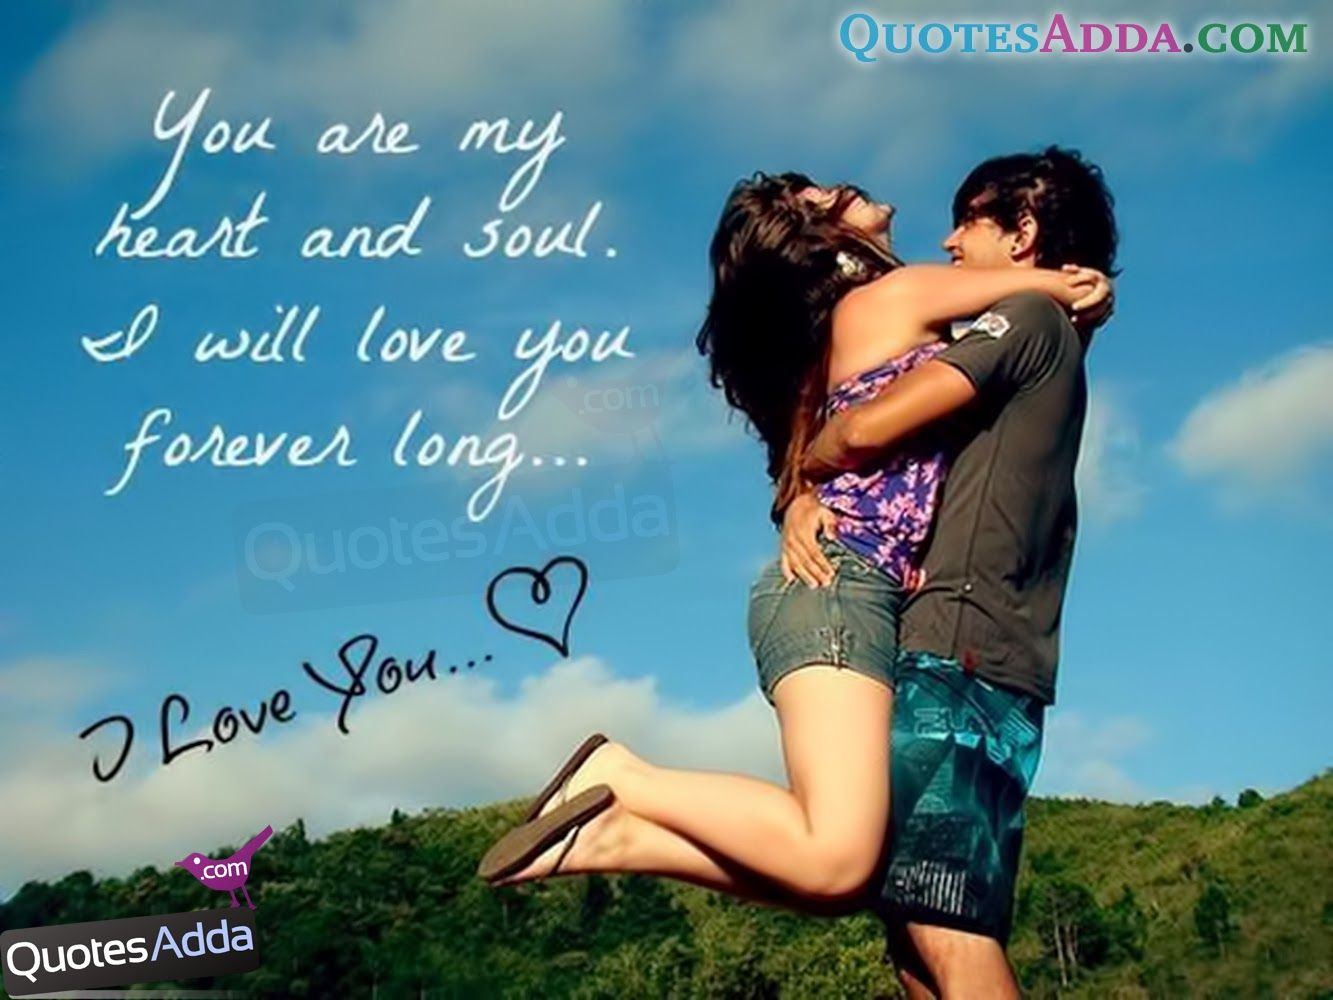 870 Romantic Love Couple Quotes Wallpaper HD